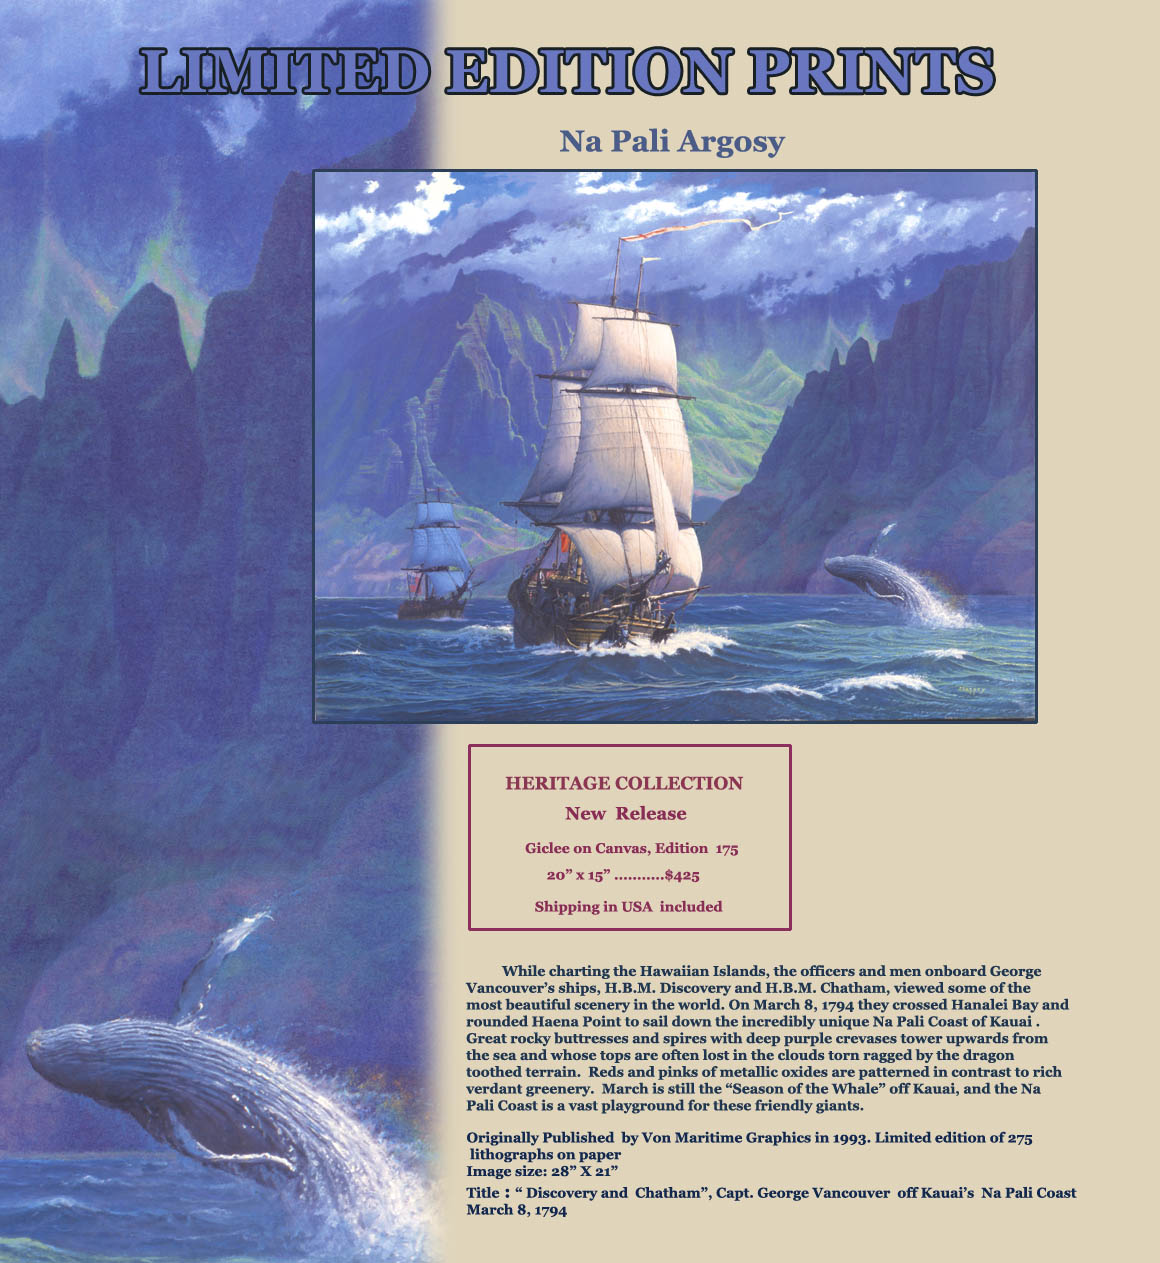 Vancouver's Discovery and Chatham sail down the Na Pali coast in 1794